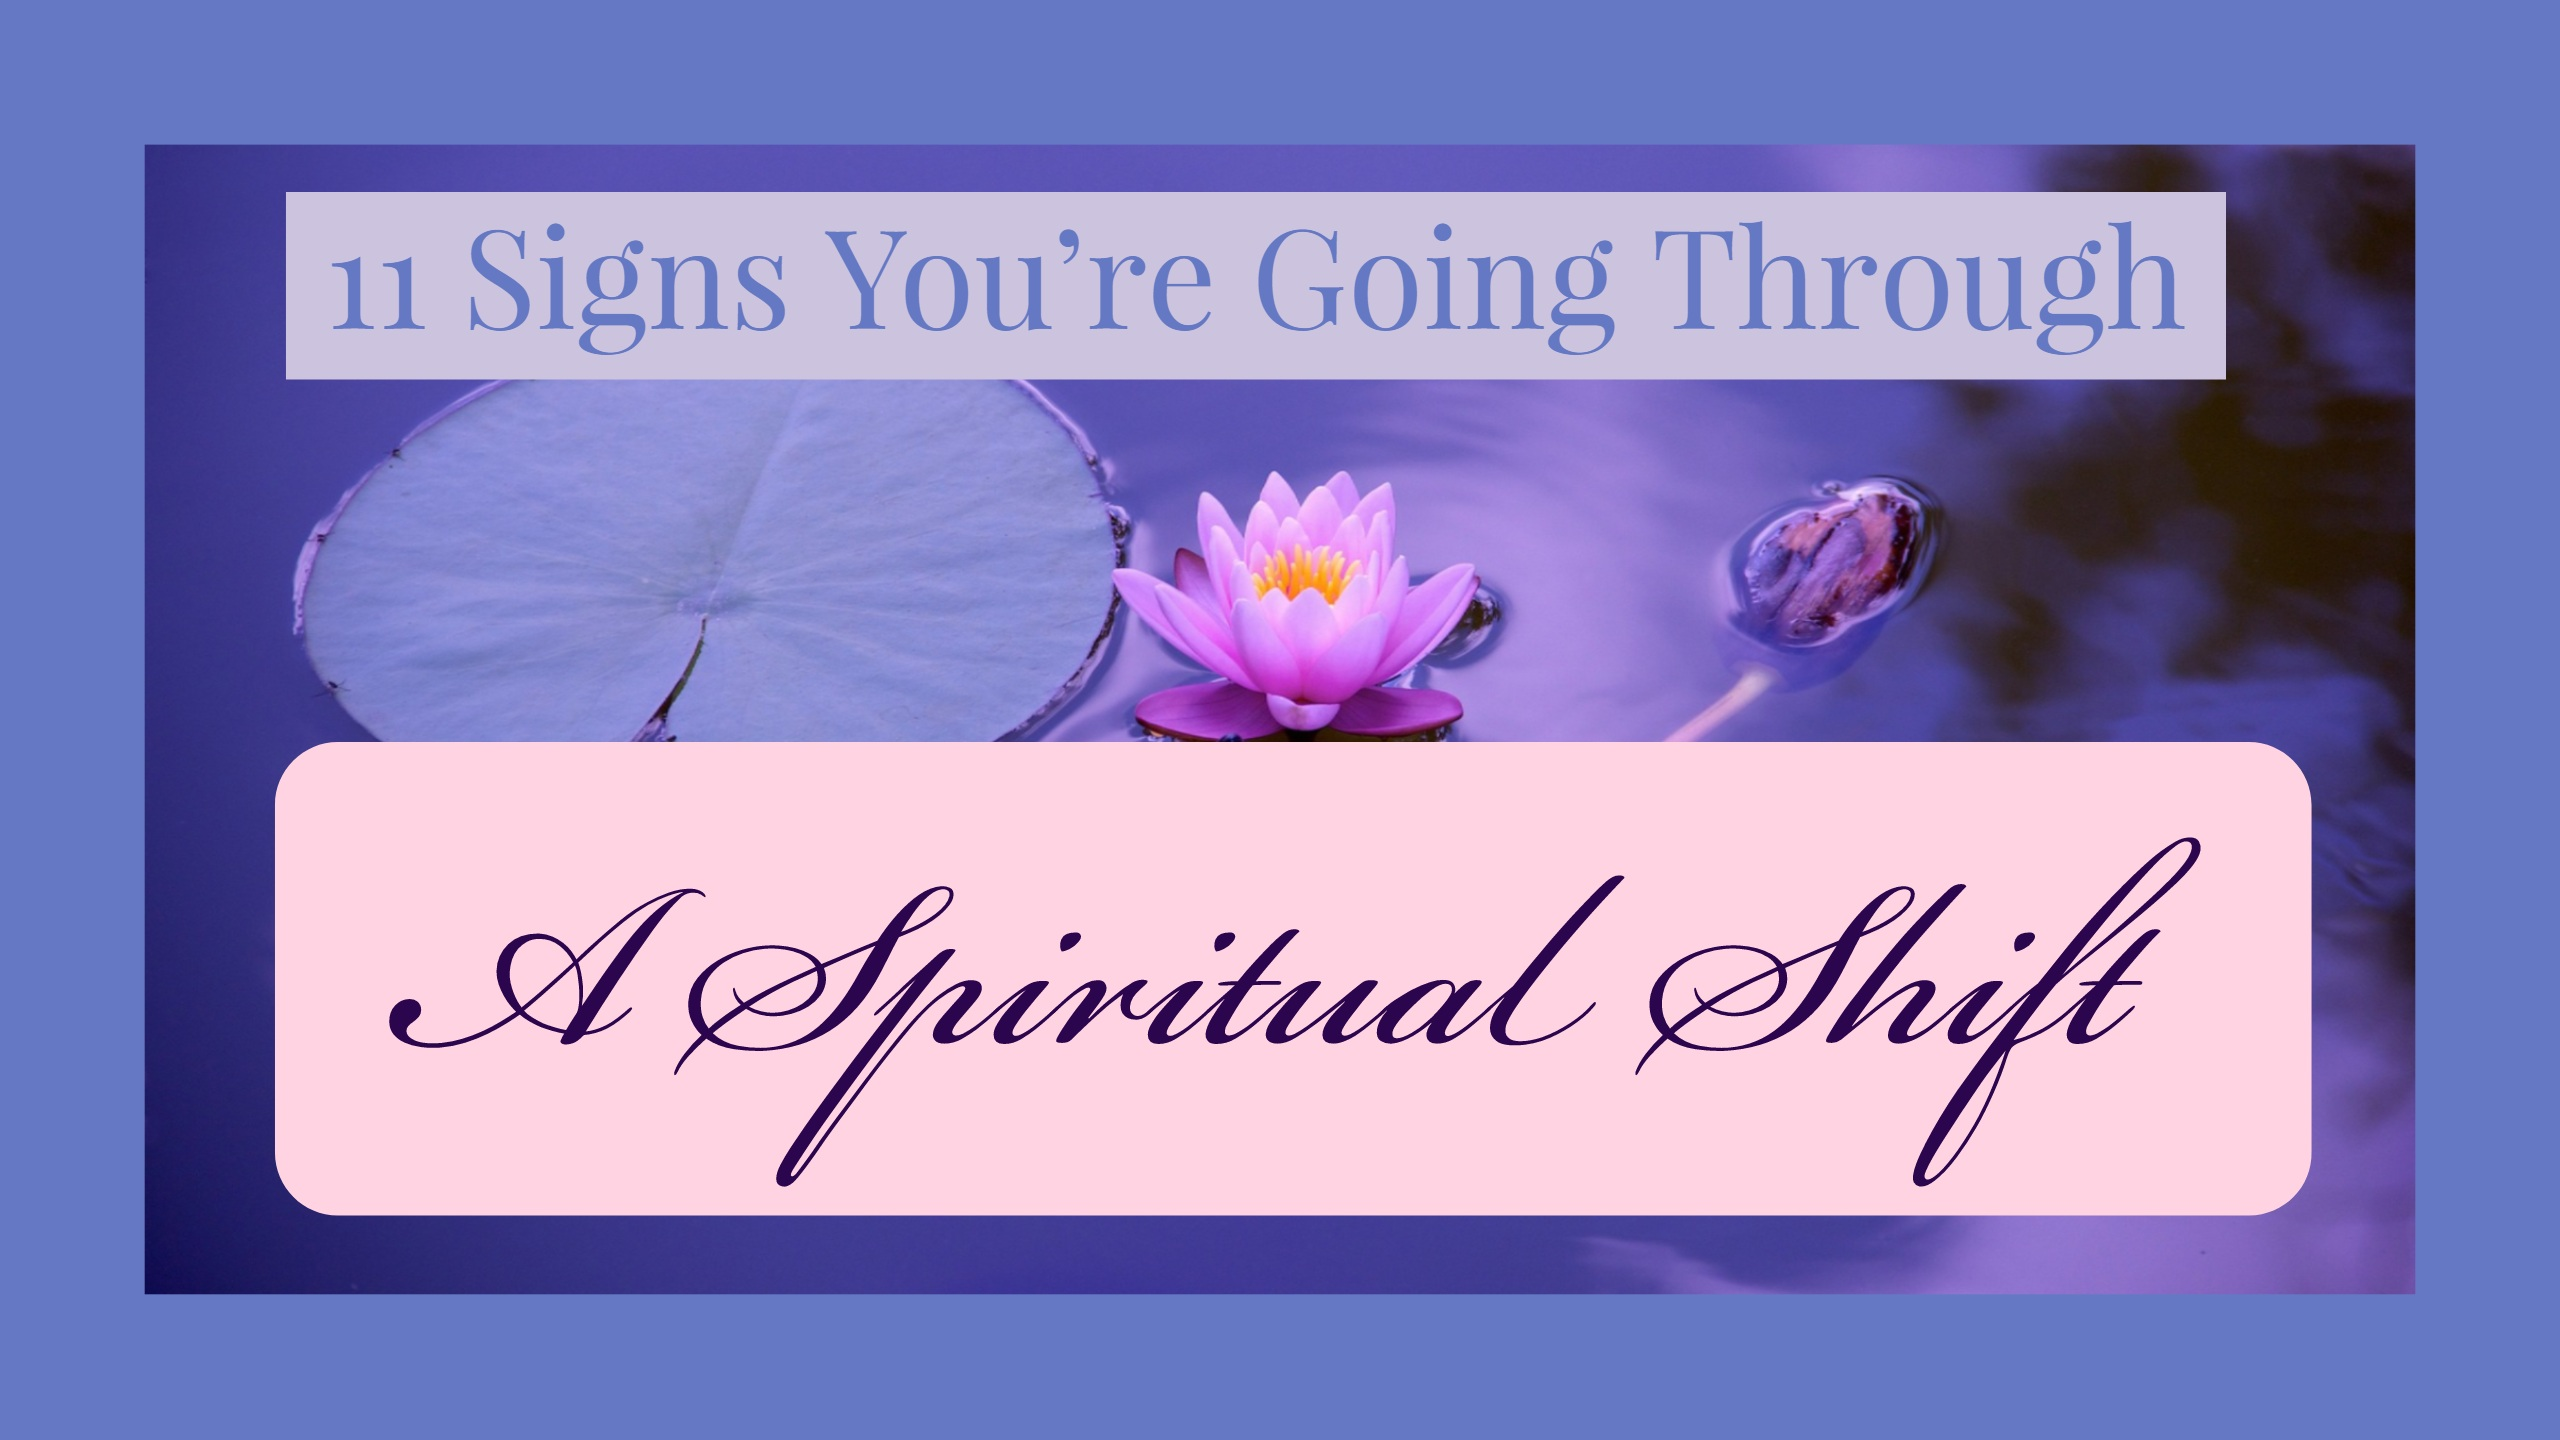 11 signs you're experiencing a spiritual shift